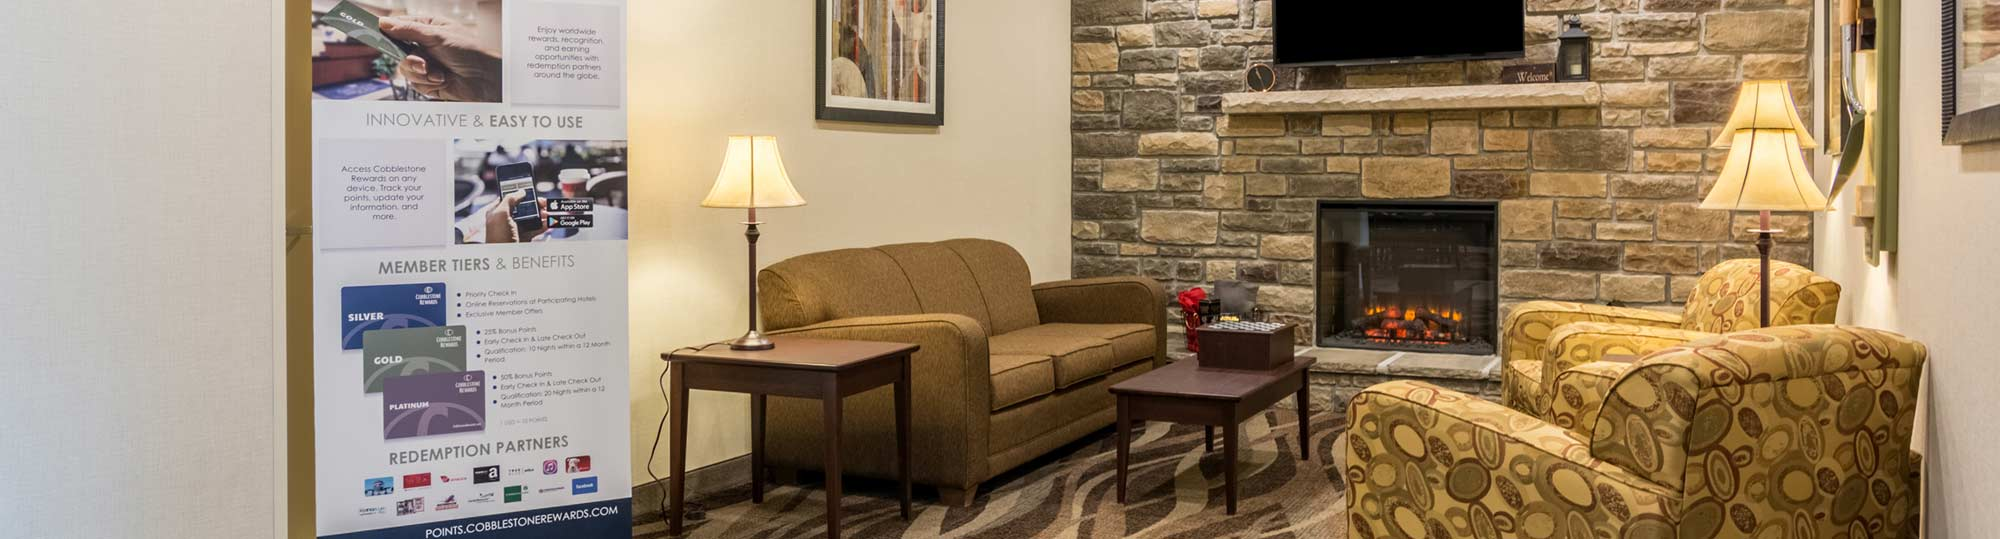 Cobblestone Hotel and Suites Erie